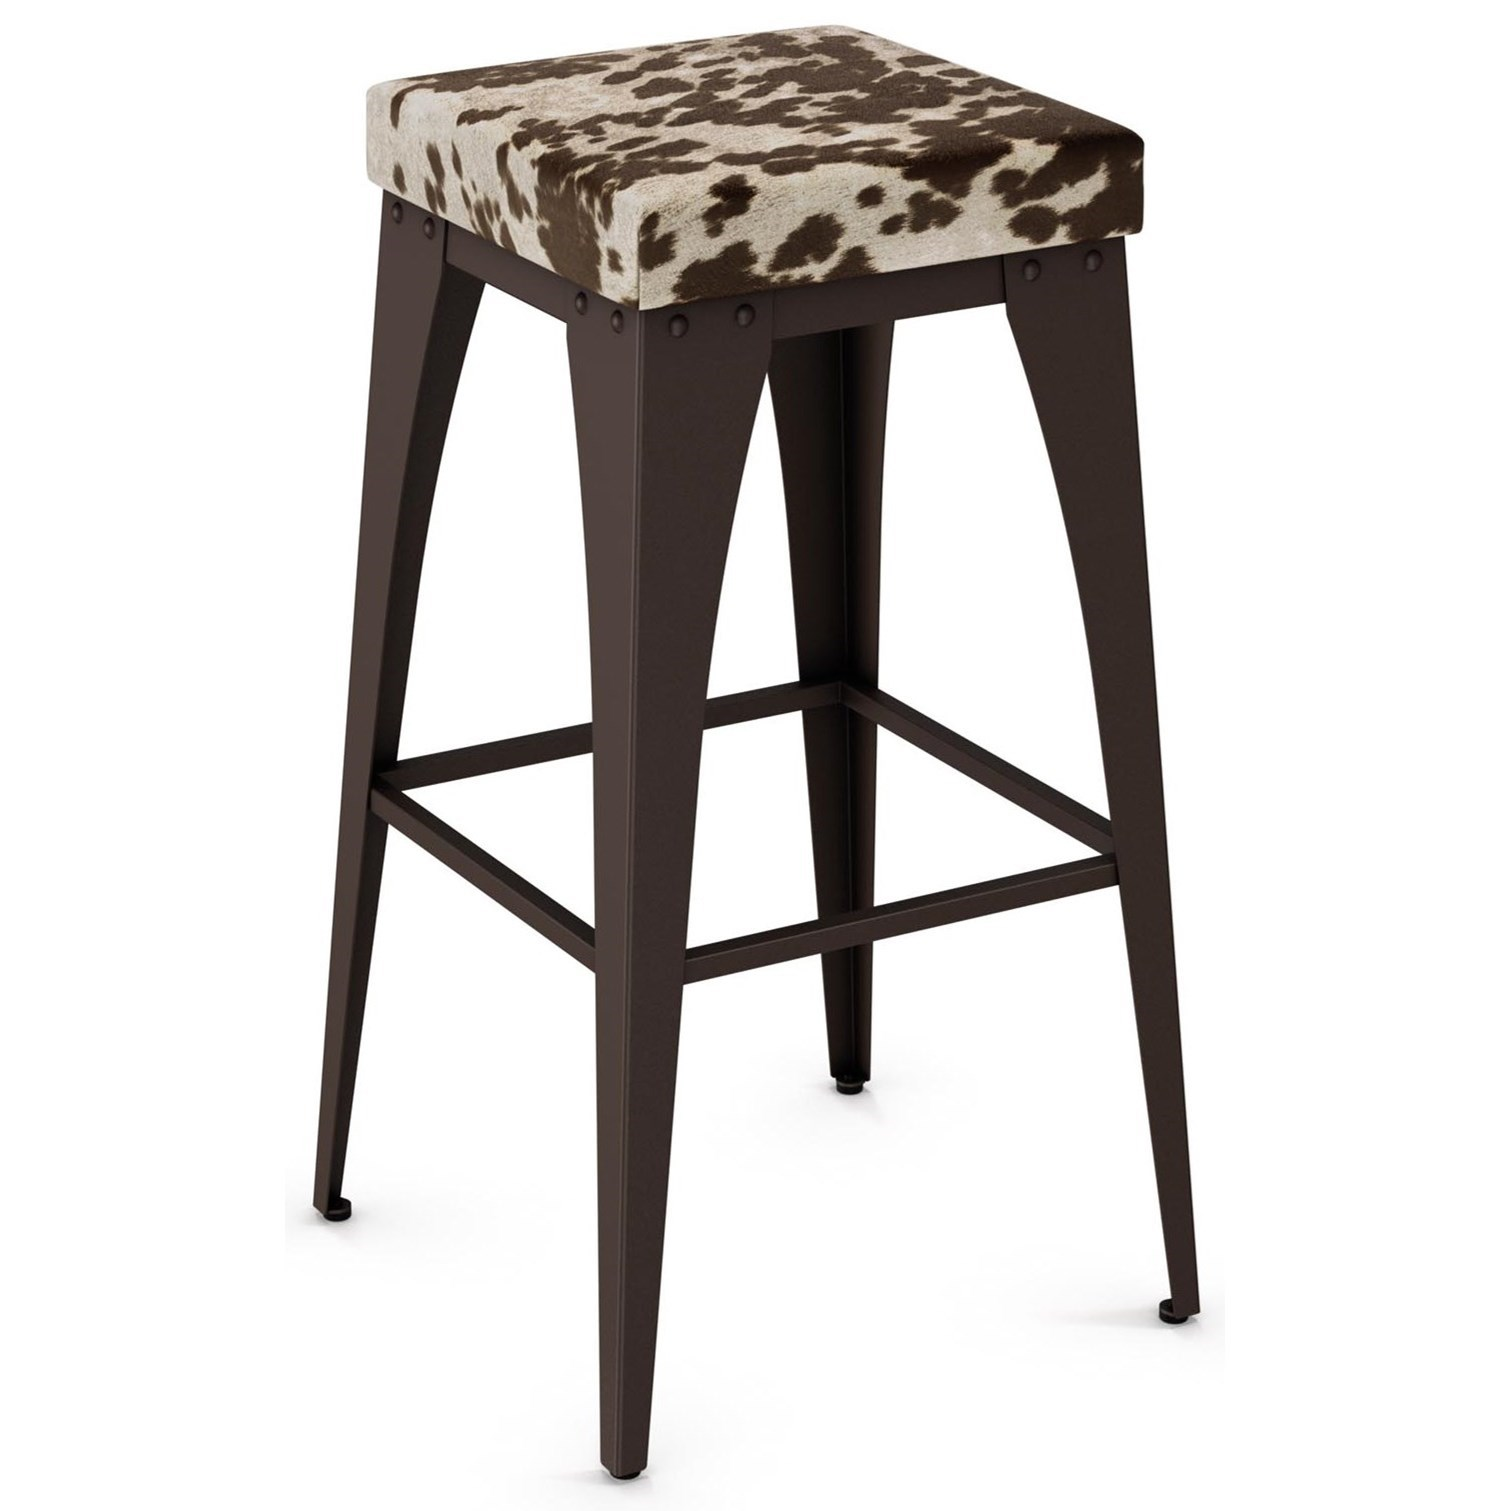 """Industrial 30"""" Upright Stool with Upholstered Seat by Amisco at Jordan's Home Furnishings"""